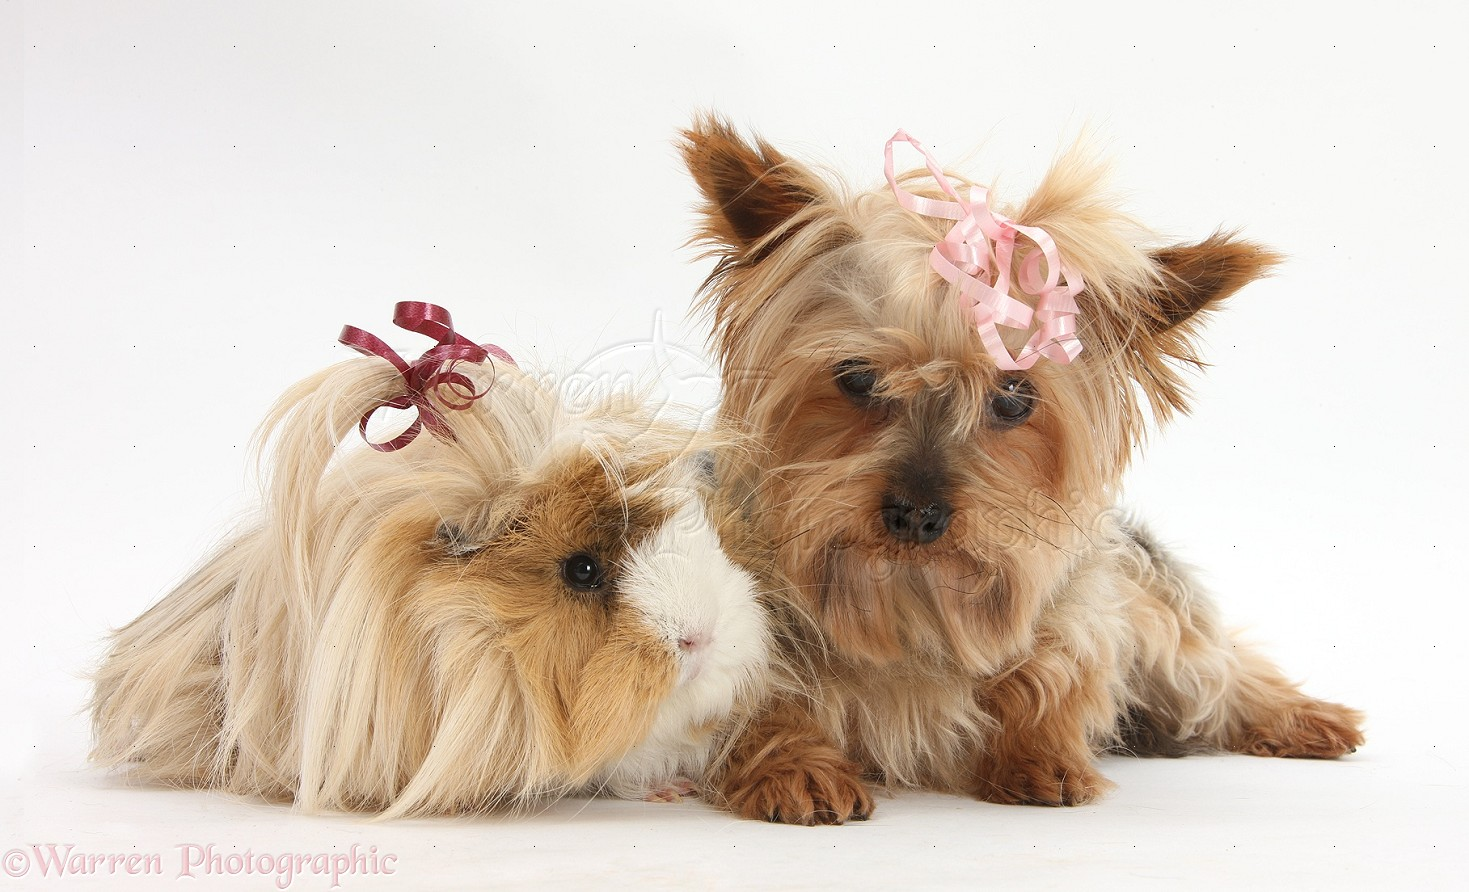 Pets Yorkie And Guinea Pig With Bows In Their Hair Photo Wp28886